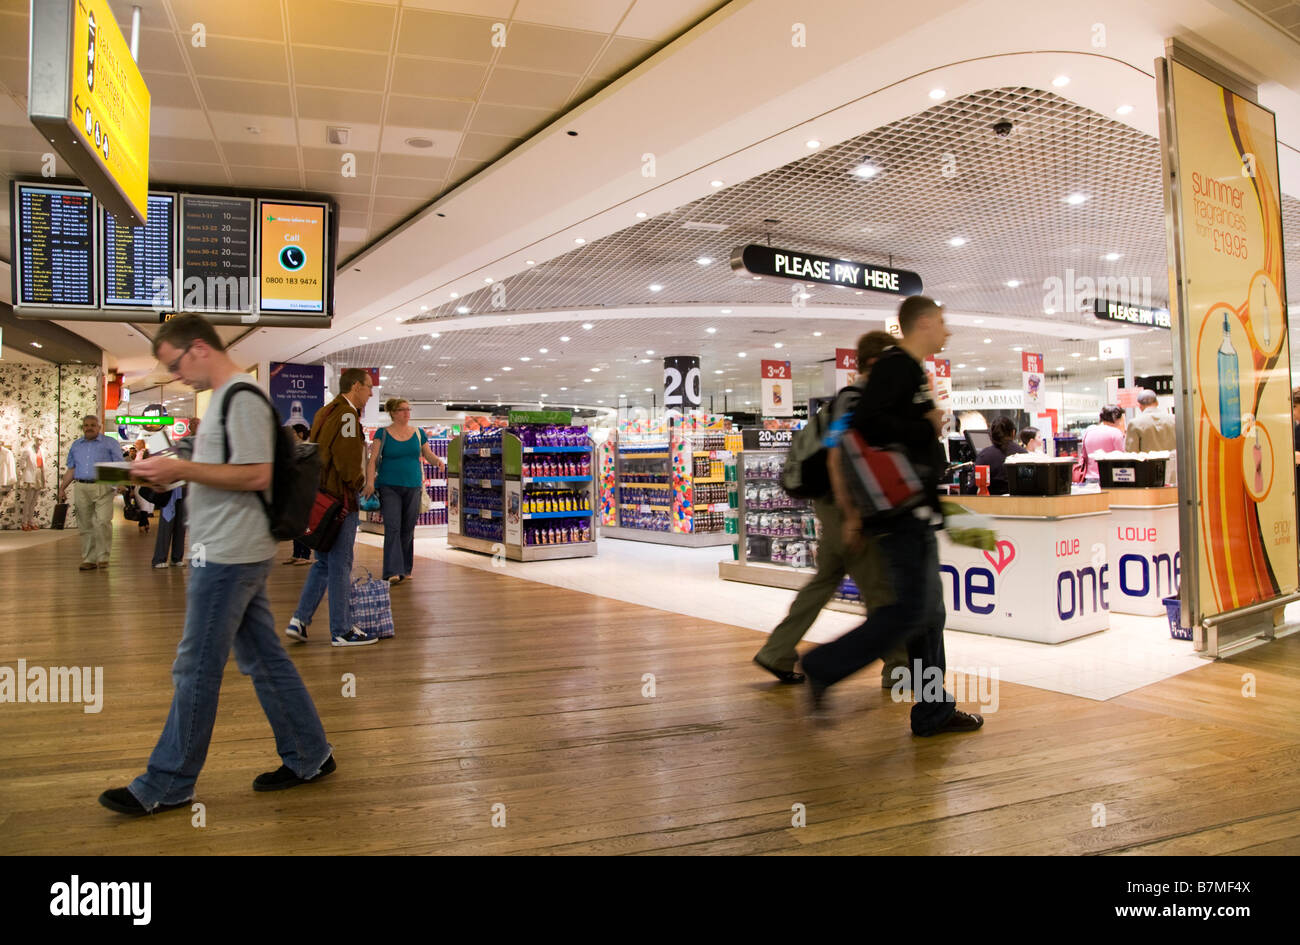 Departure Lounge Interior And Flight Monitors And One Love Shop Stock Photo Alamy